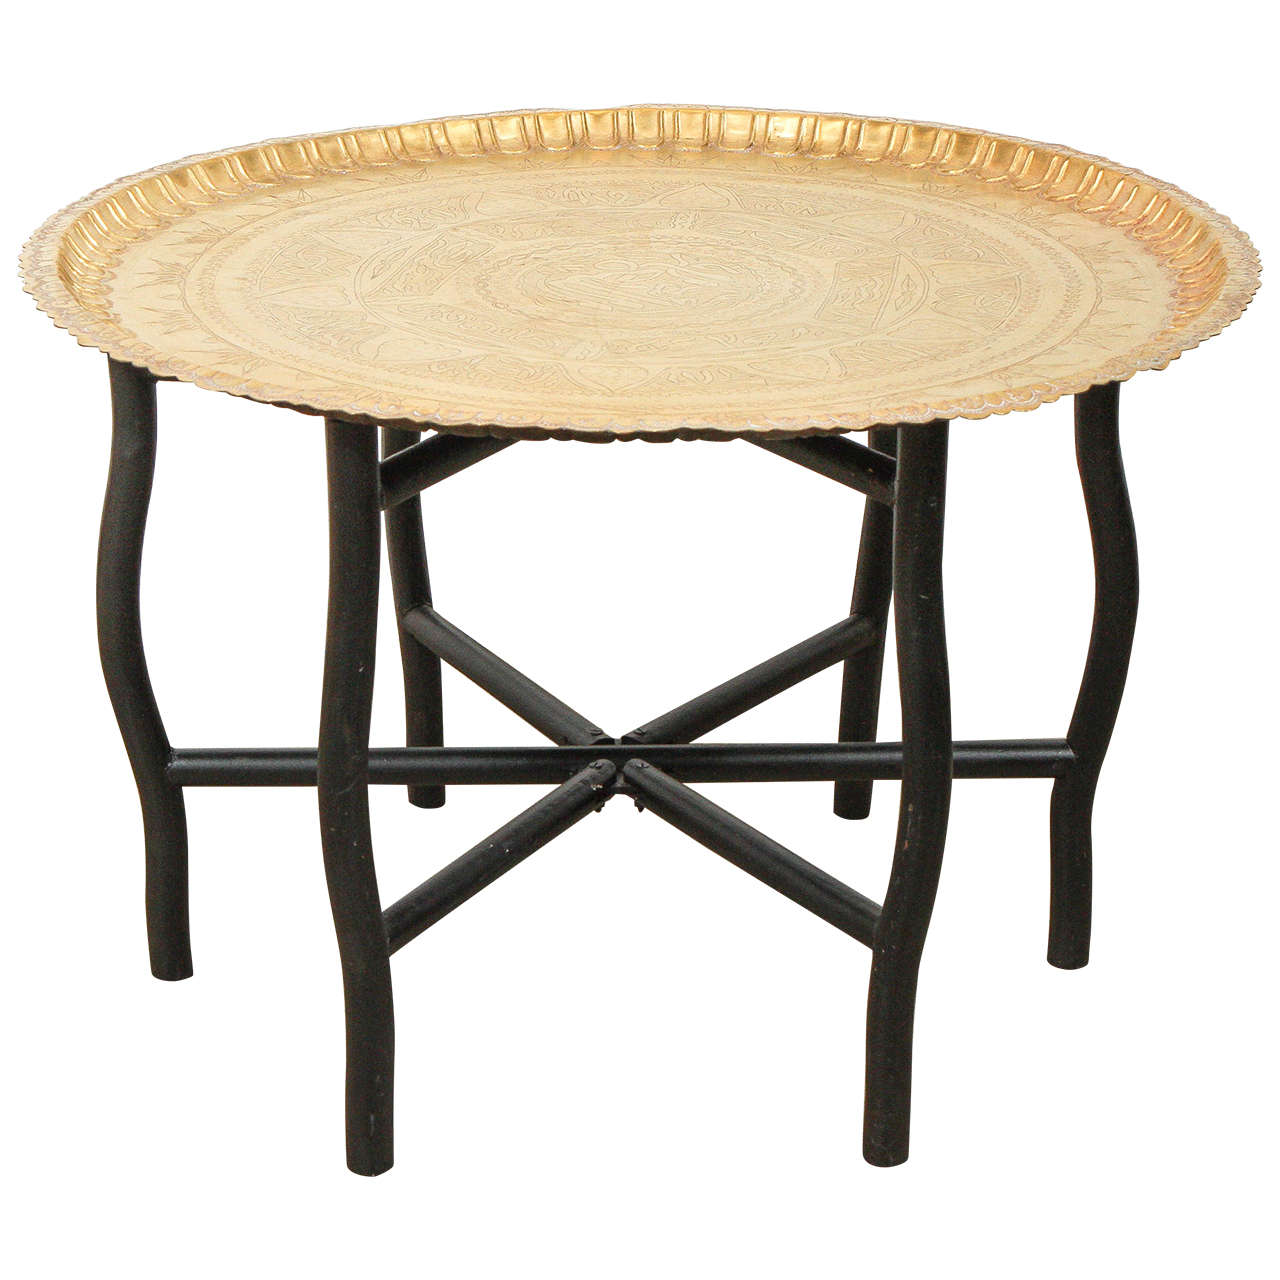 Moroccan Brass Tray Table On Folding Stand At 1stdibs